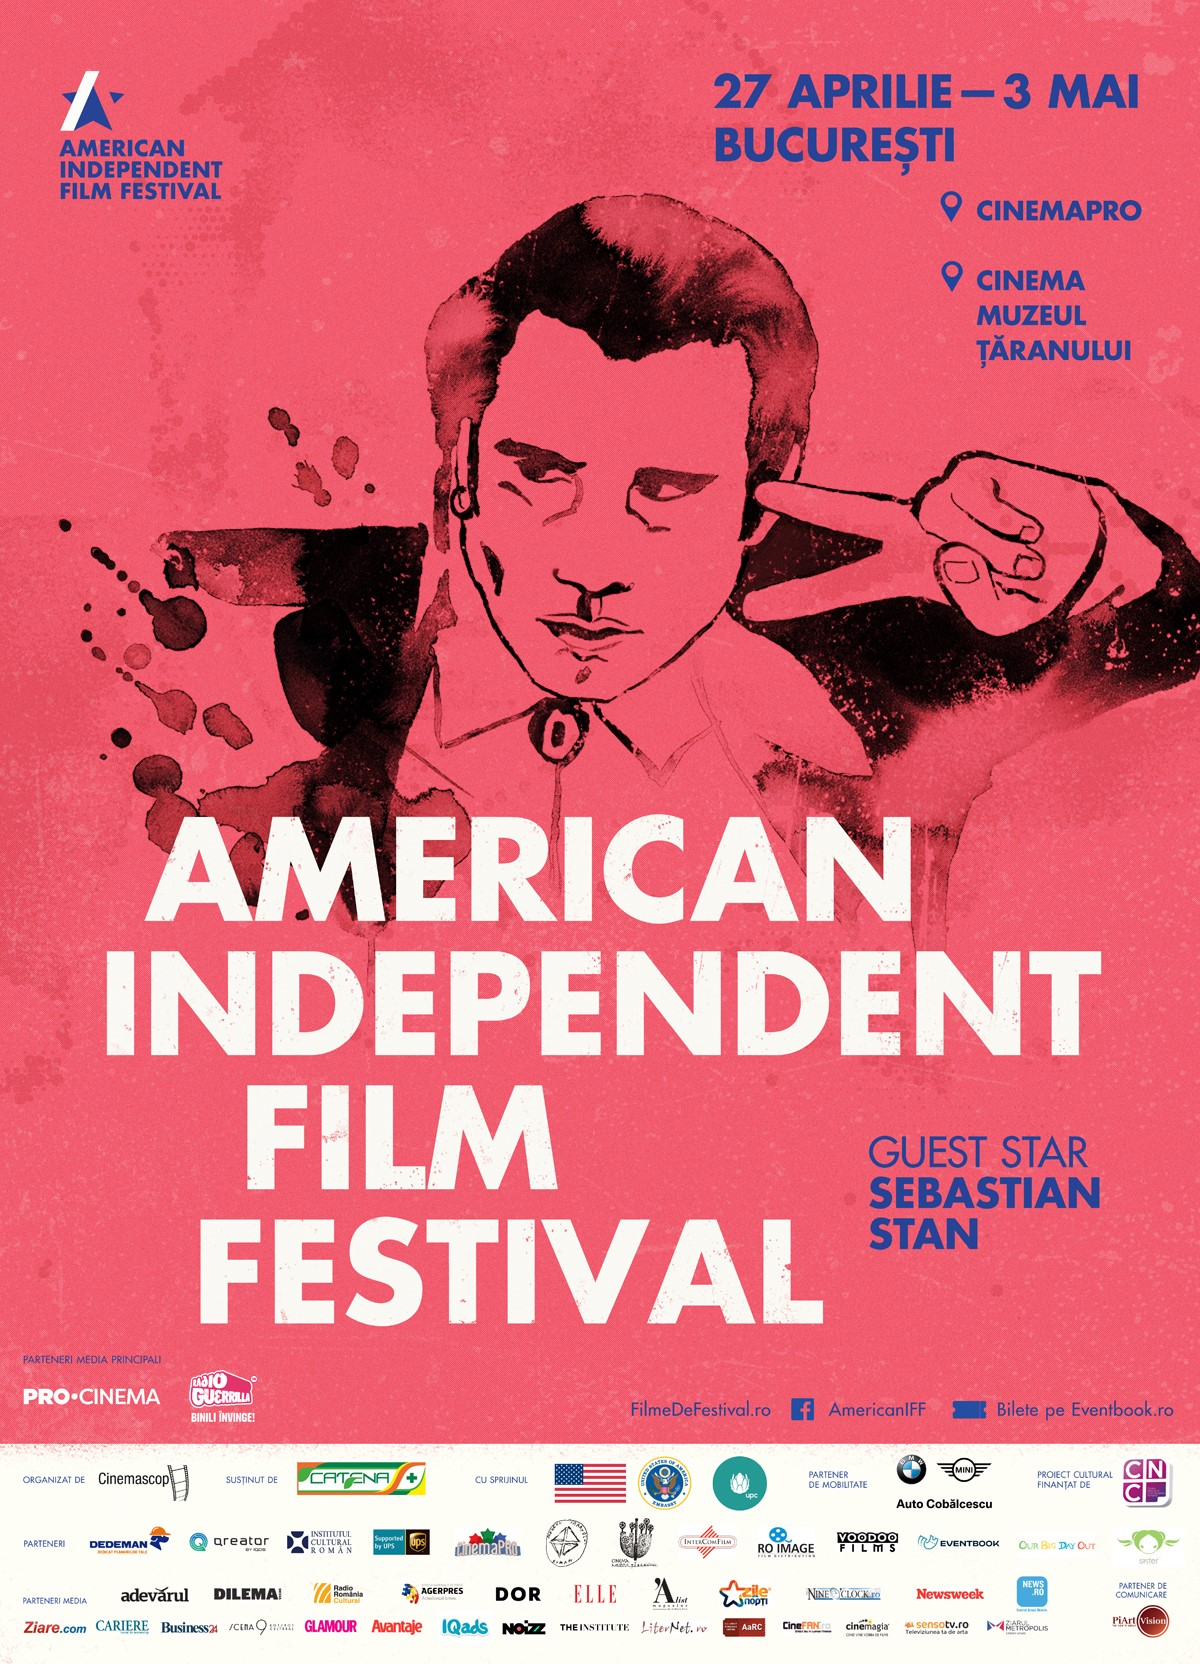 american independent cinema dissertation I see the search for identity that is and accented cinema, this dissertation asks—among key questions—whether algerian-directed it enables a more nuanced understanding of its films it provides an opportunity to notice how contemporary american independent cinema intersects.